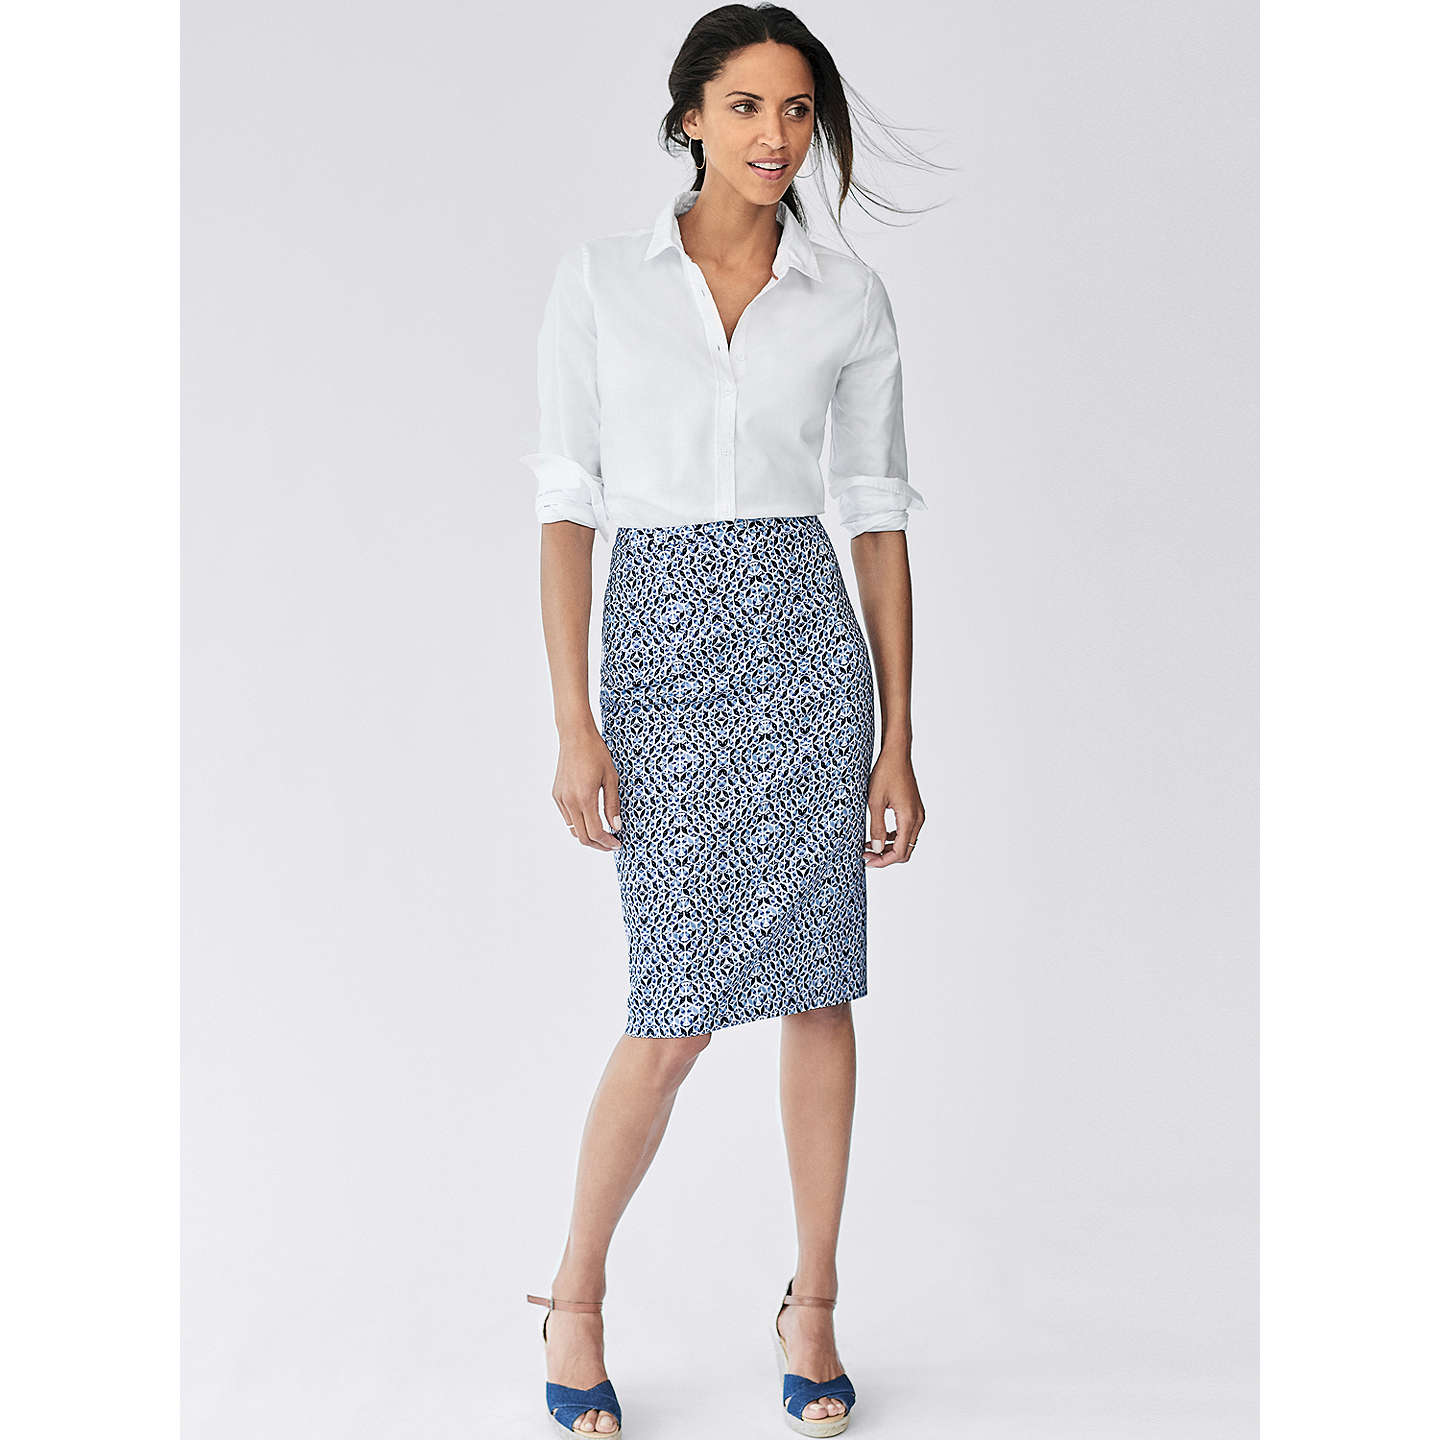 BuyPure Collection Pencil Skirt, Blue Geo Print, 8 Online at johnlewis.com